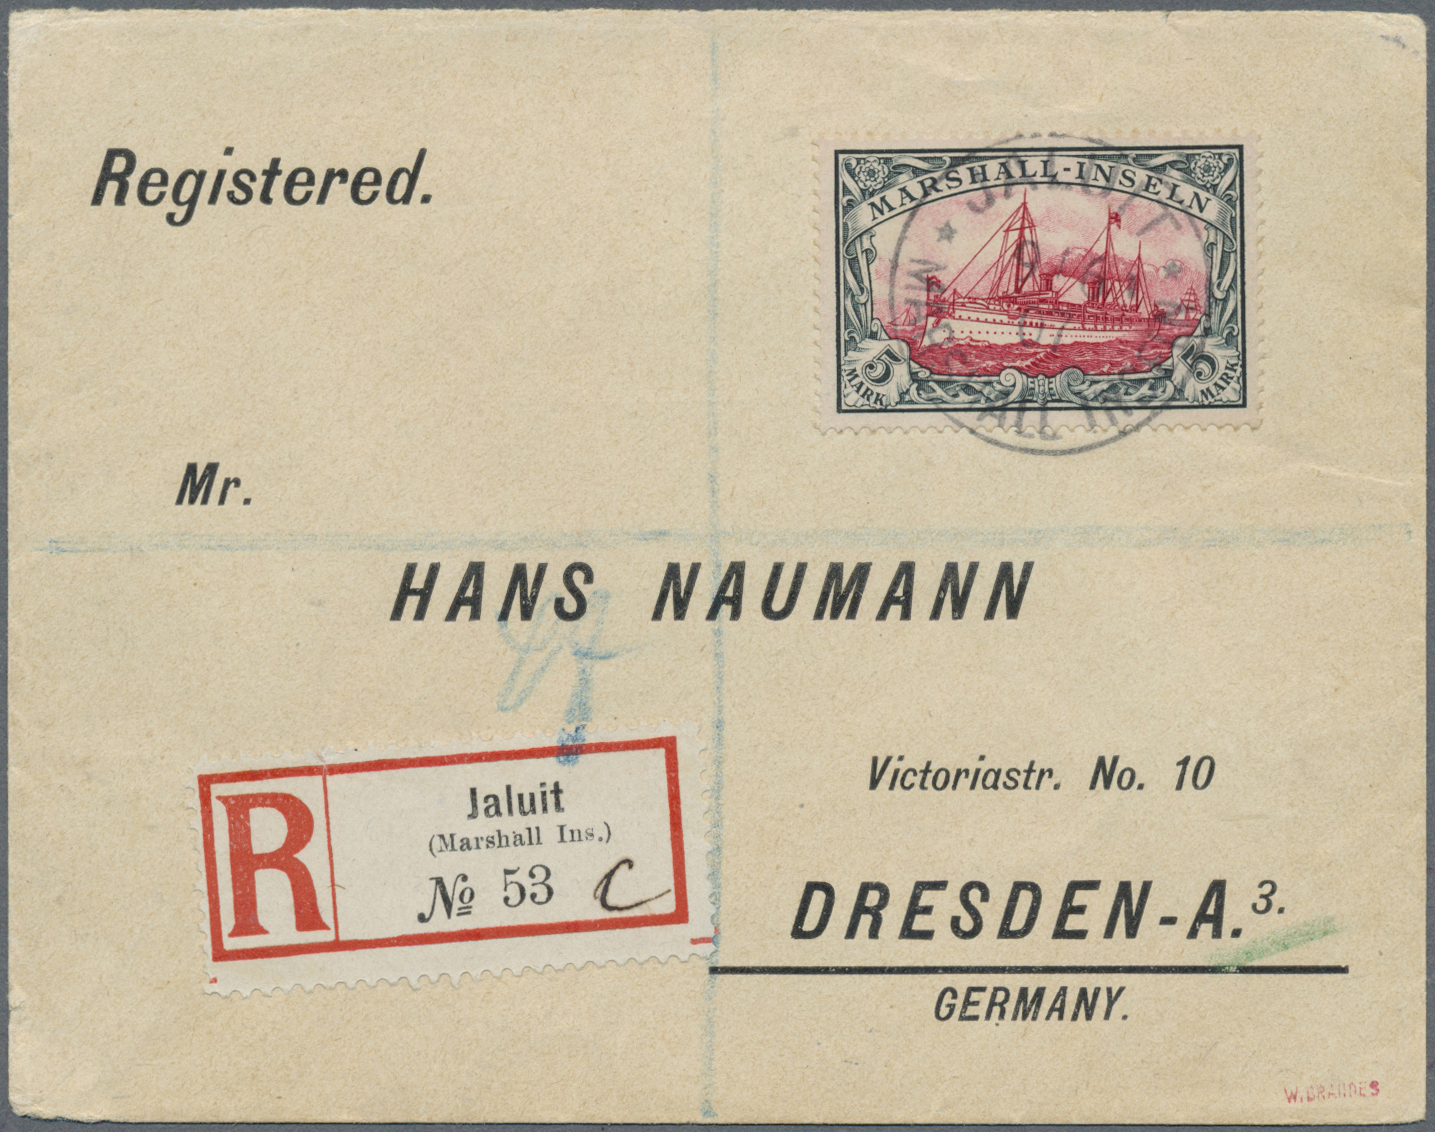 Lot 18782 - Deutsche Kolonien - Marshall-Inseln  -  Auktionshaus Christoph Gärtner GmbH & Co. KG Auction #40 Germany, Picture Post Cards, Collections Overseas, Thematics